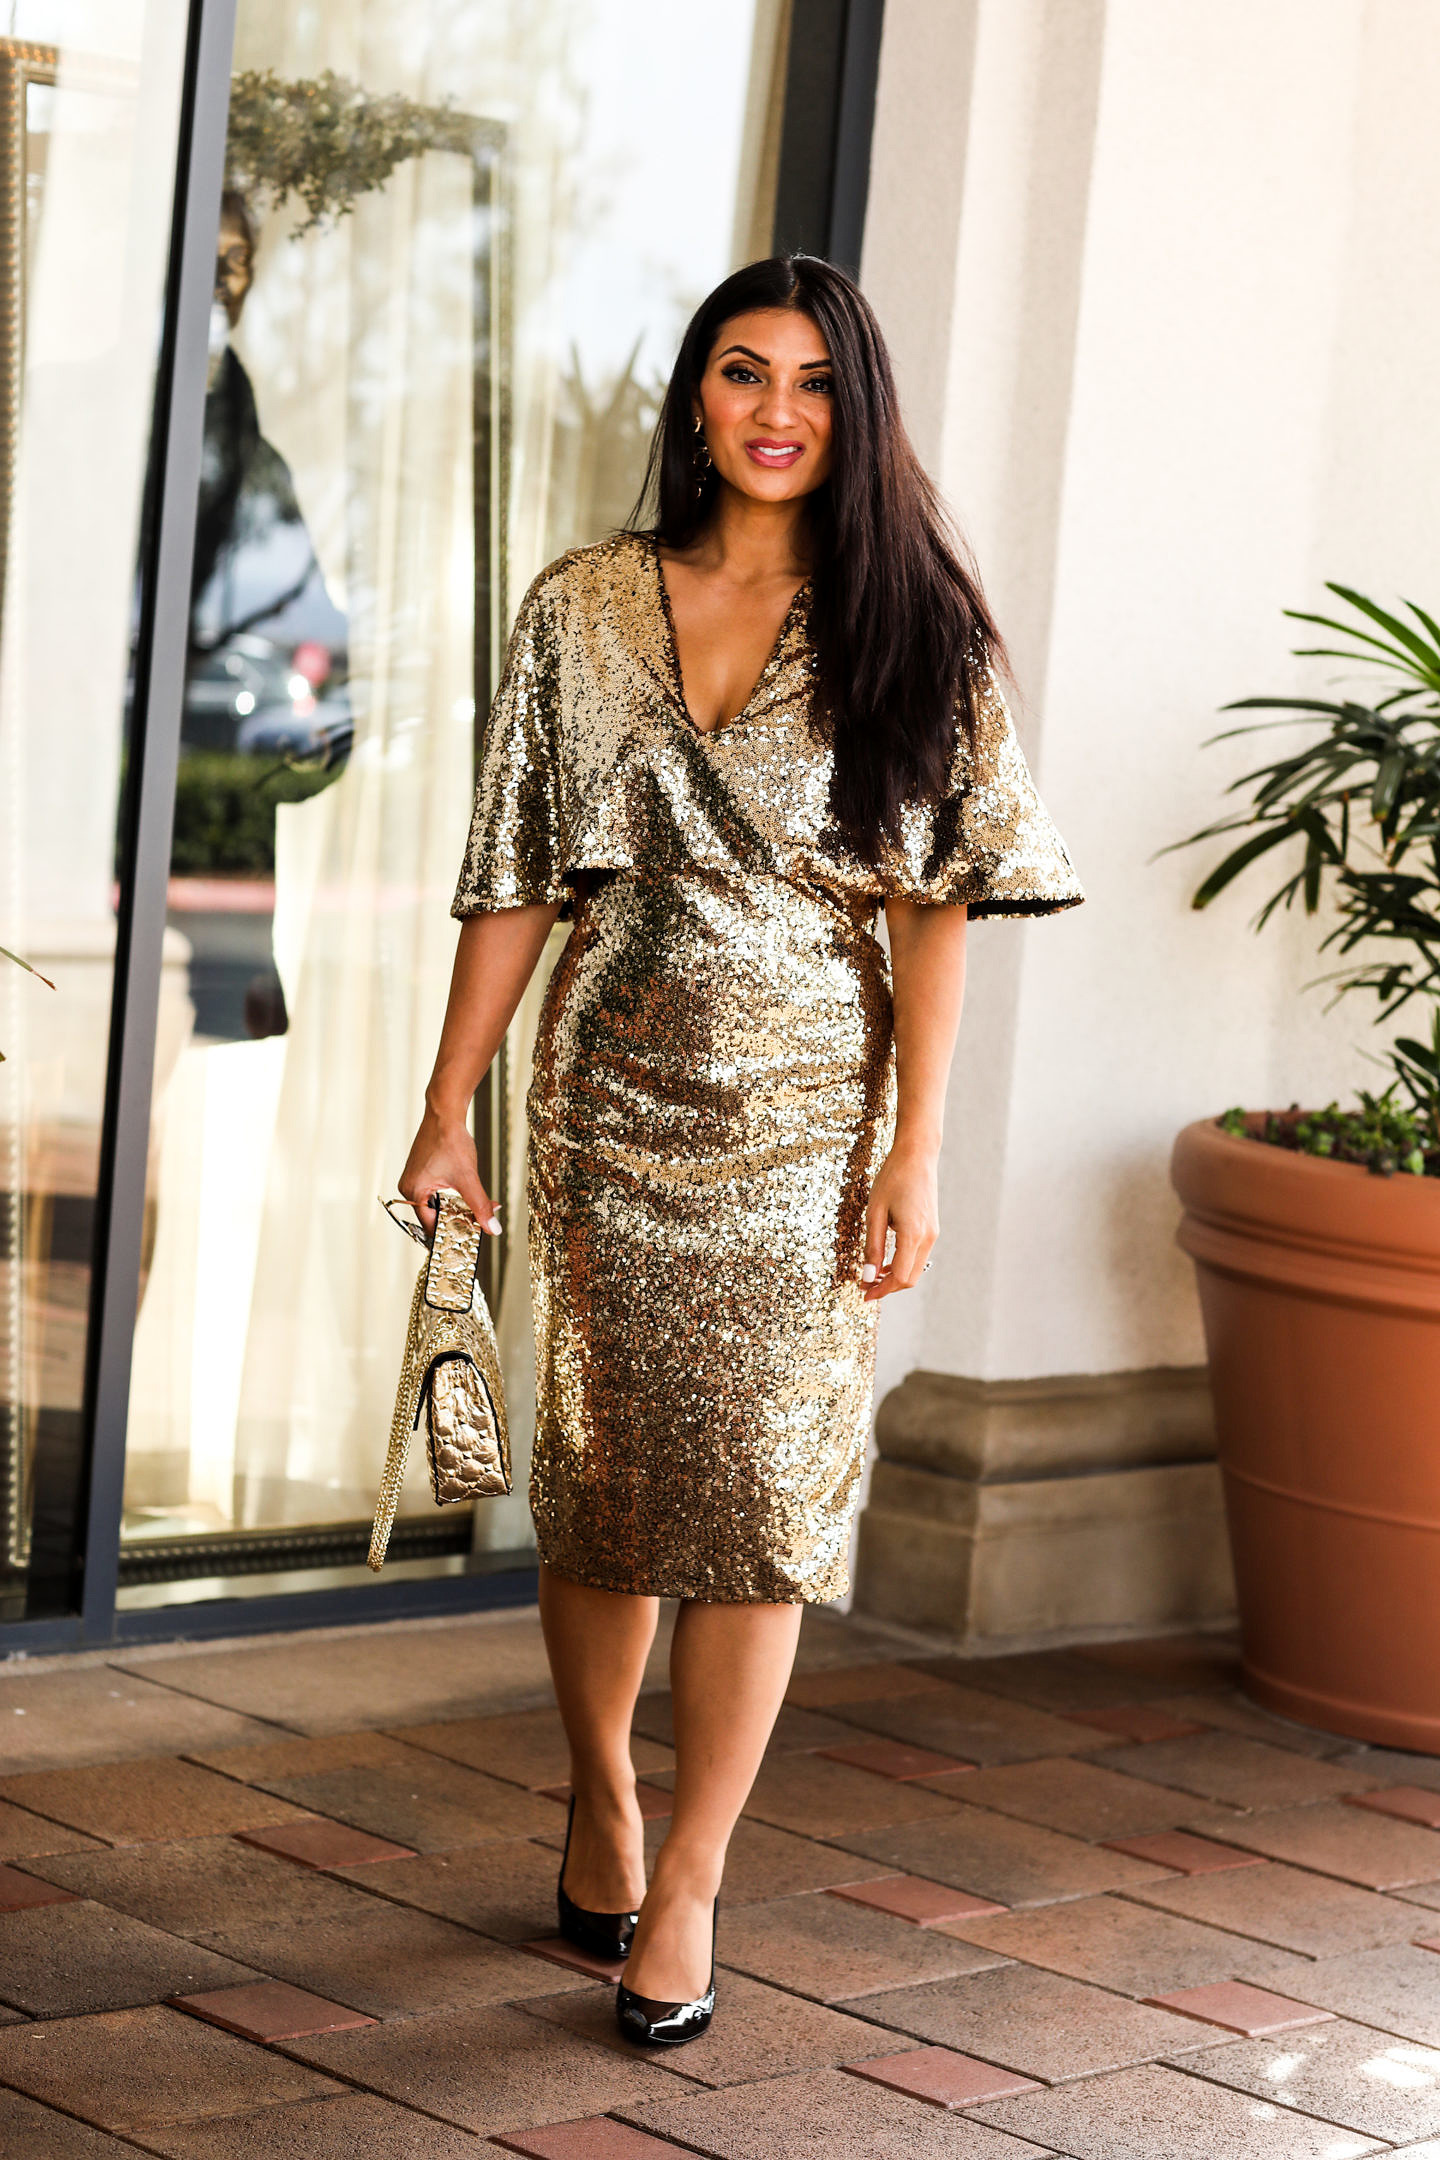 Looking for the perfect New Year's Eve Outfit? Orange County Blogger Debbie Savage is sharing her top New Year's Eve Outfit Ideas here!